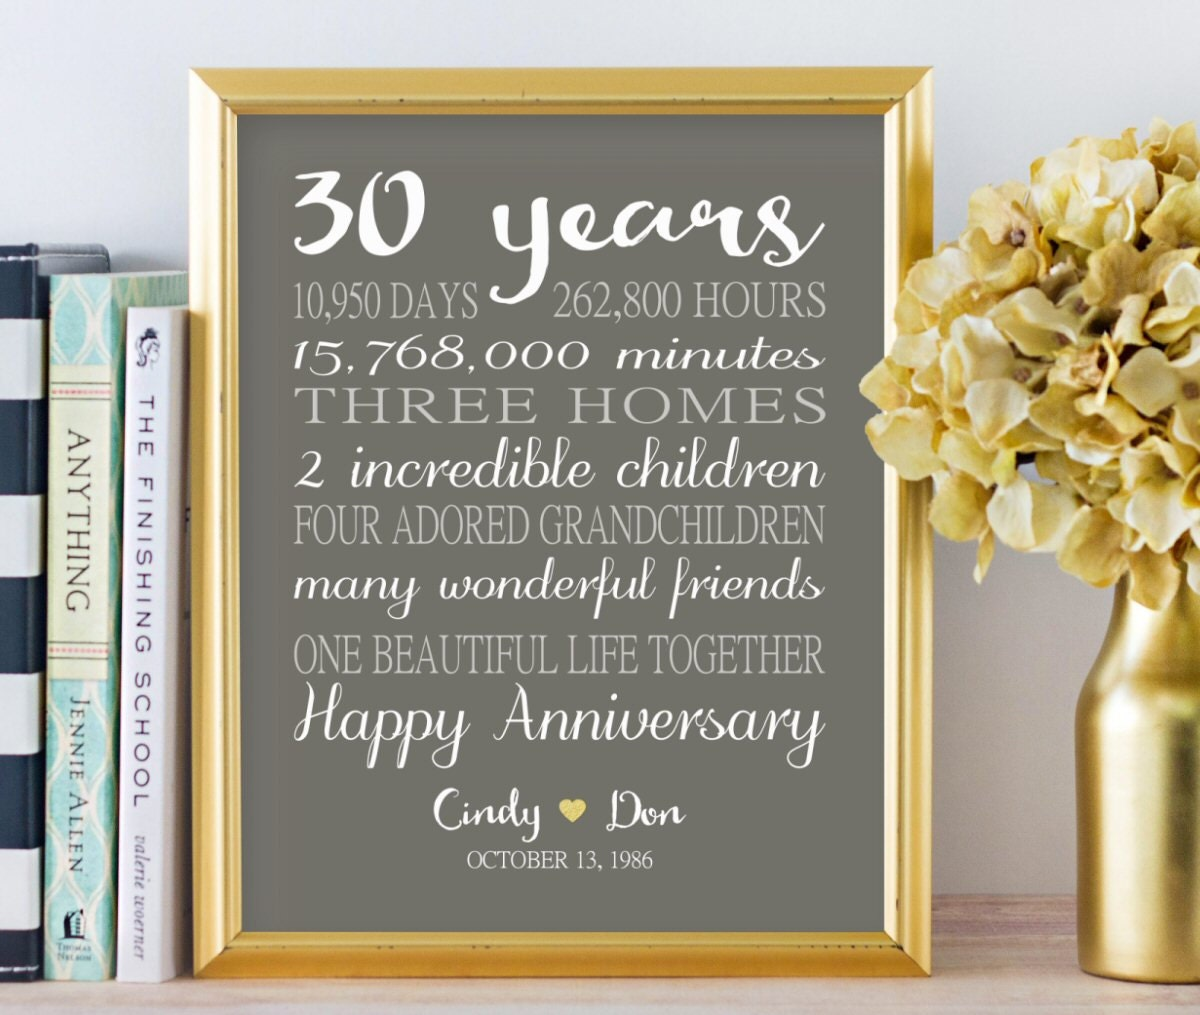 Australian Wedding Anniversary Gifts By Year: 30th Anniversary Gifts Personalized Gift 30 Years Wedding